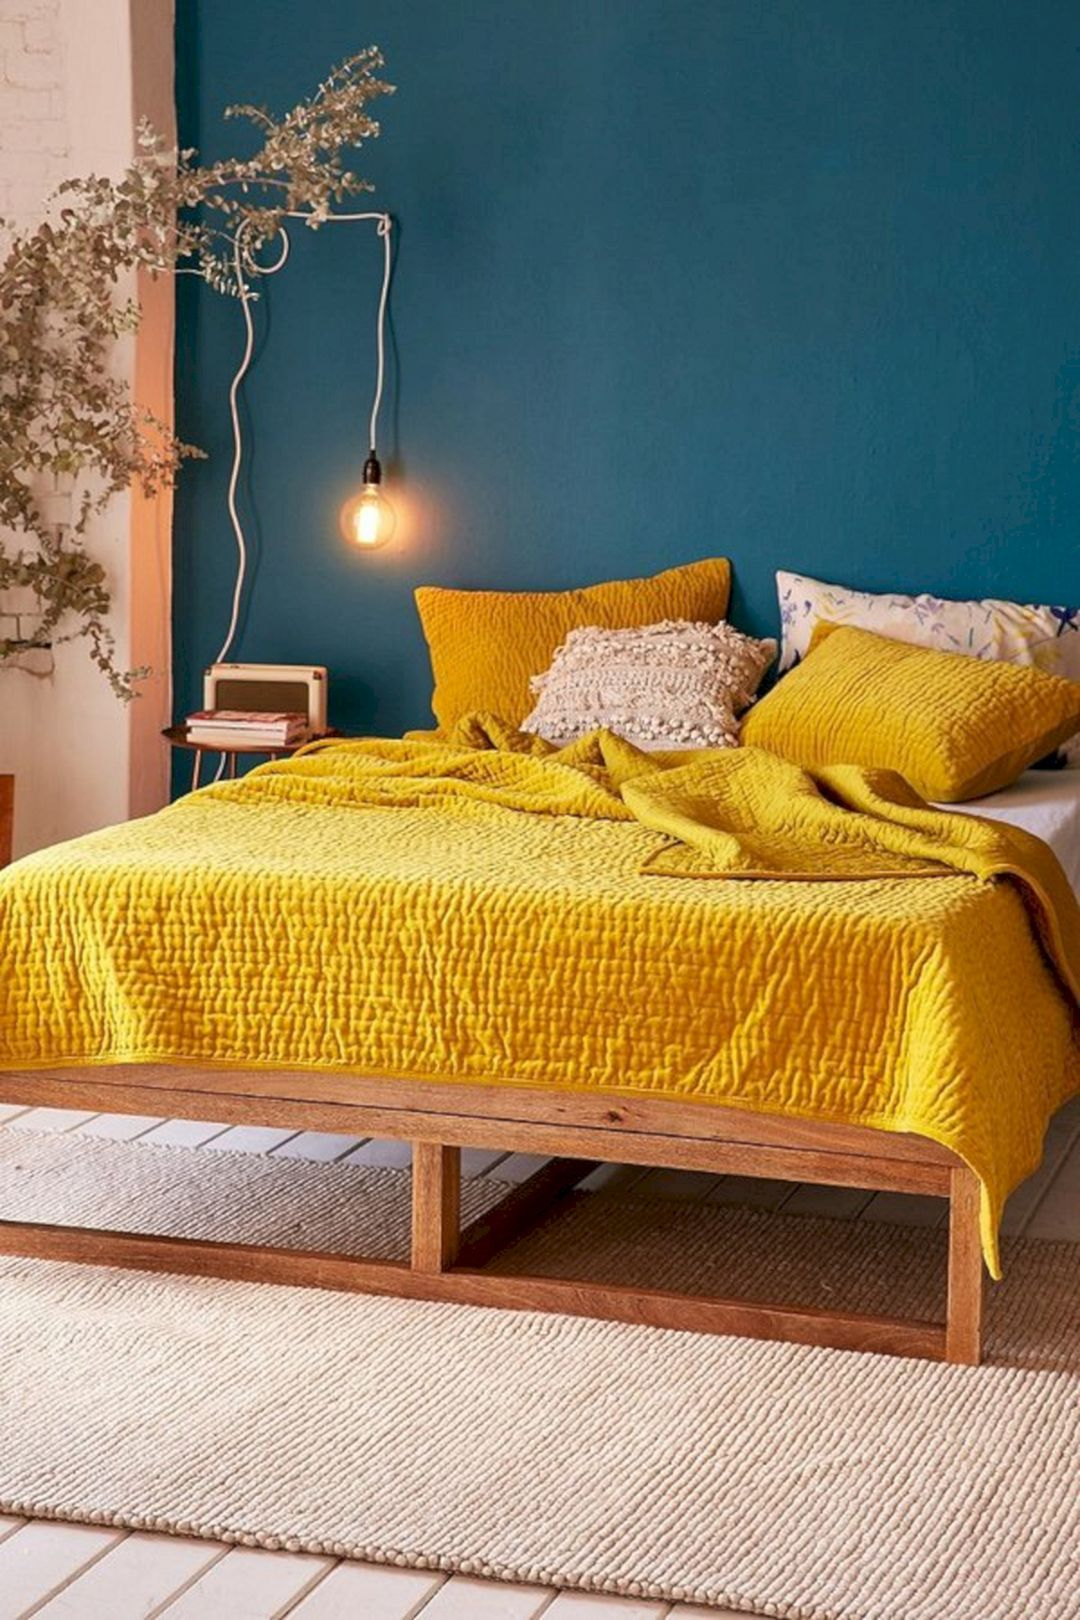 45+ Incredible Yellow Aesthetic Bedroom Decorating Ideas | Design ...